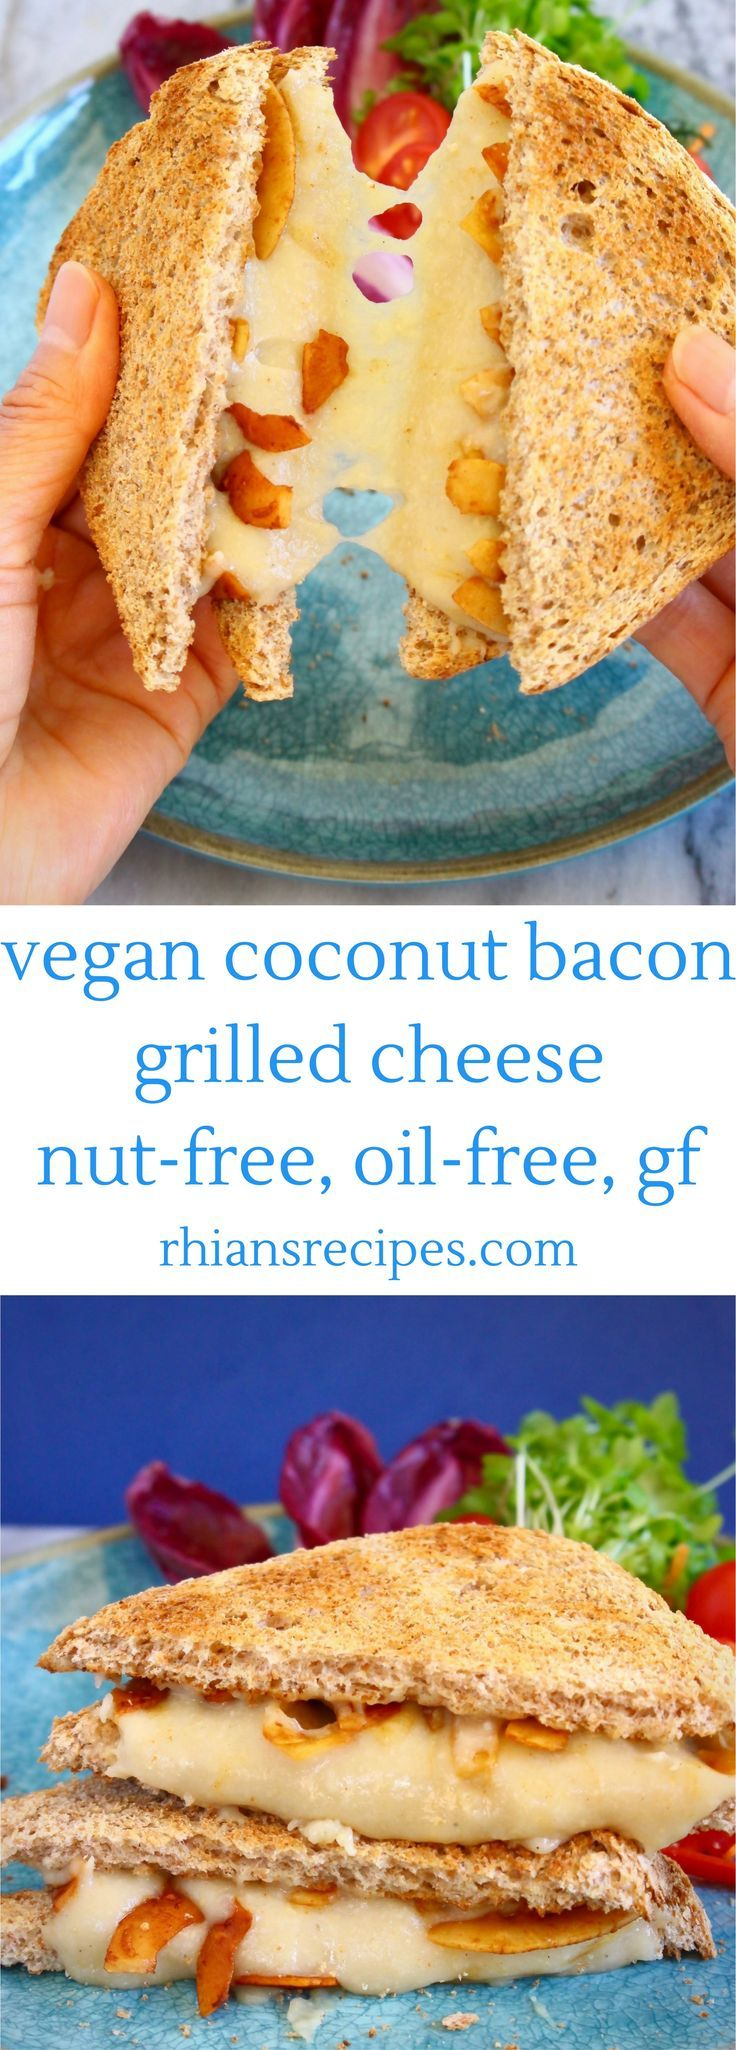 VEGAN Stretchy Melty Grilled Cheese loaded with crispy, flavourful Coconut Bacon! Completely natural, oil-free, nut-free, gluten-free. Made using mochi!